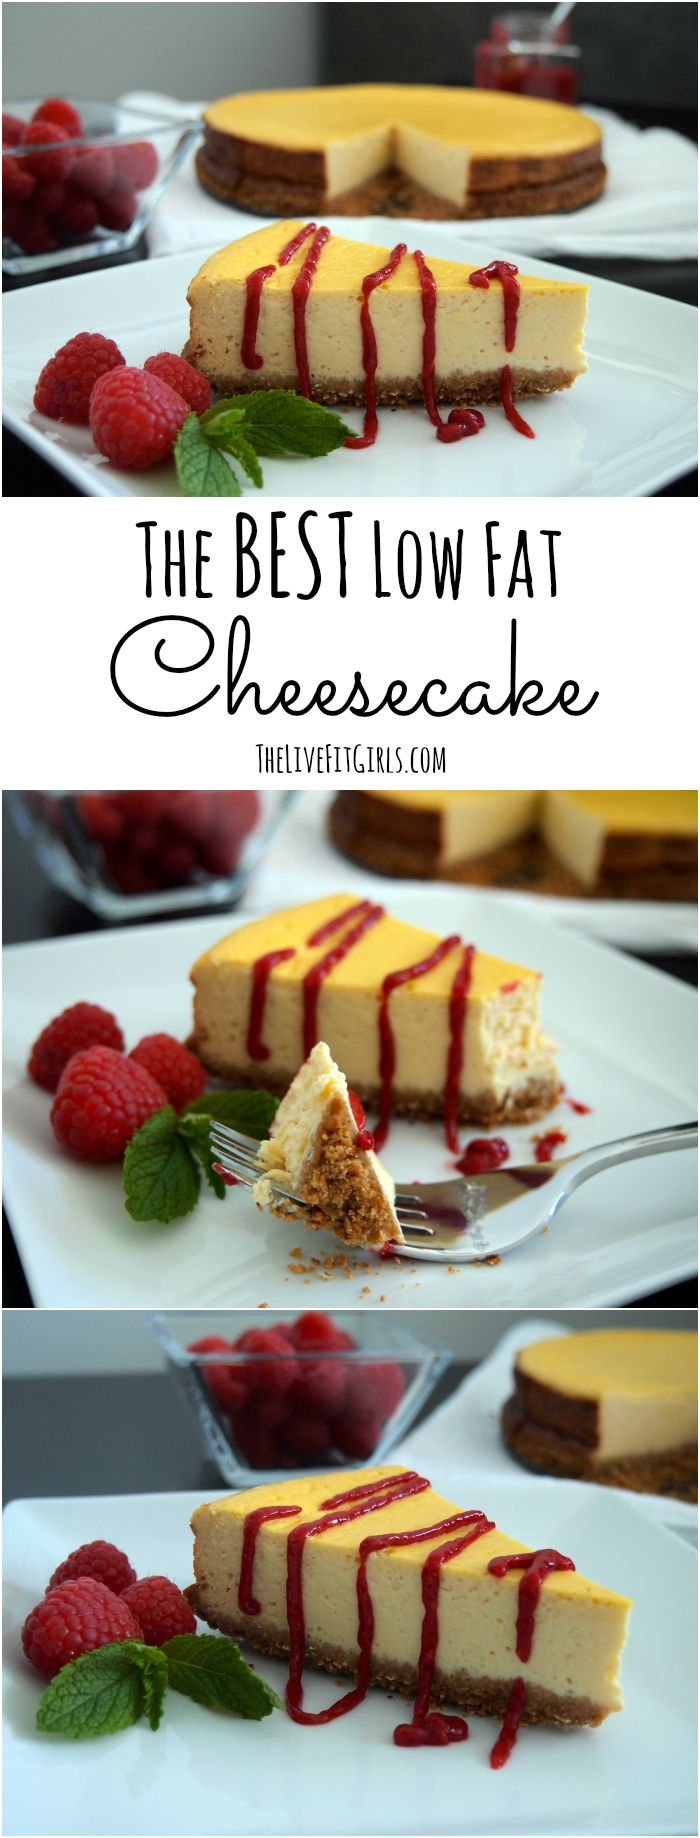 This is THE BEST Low-Fat Cheesecake recipe EVER - with only 150 calories per slice you cannot go wrong with crowd-pleasing recipe!